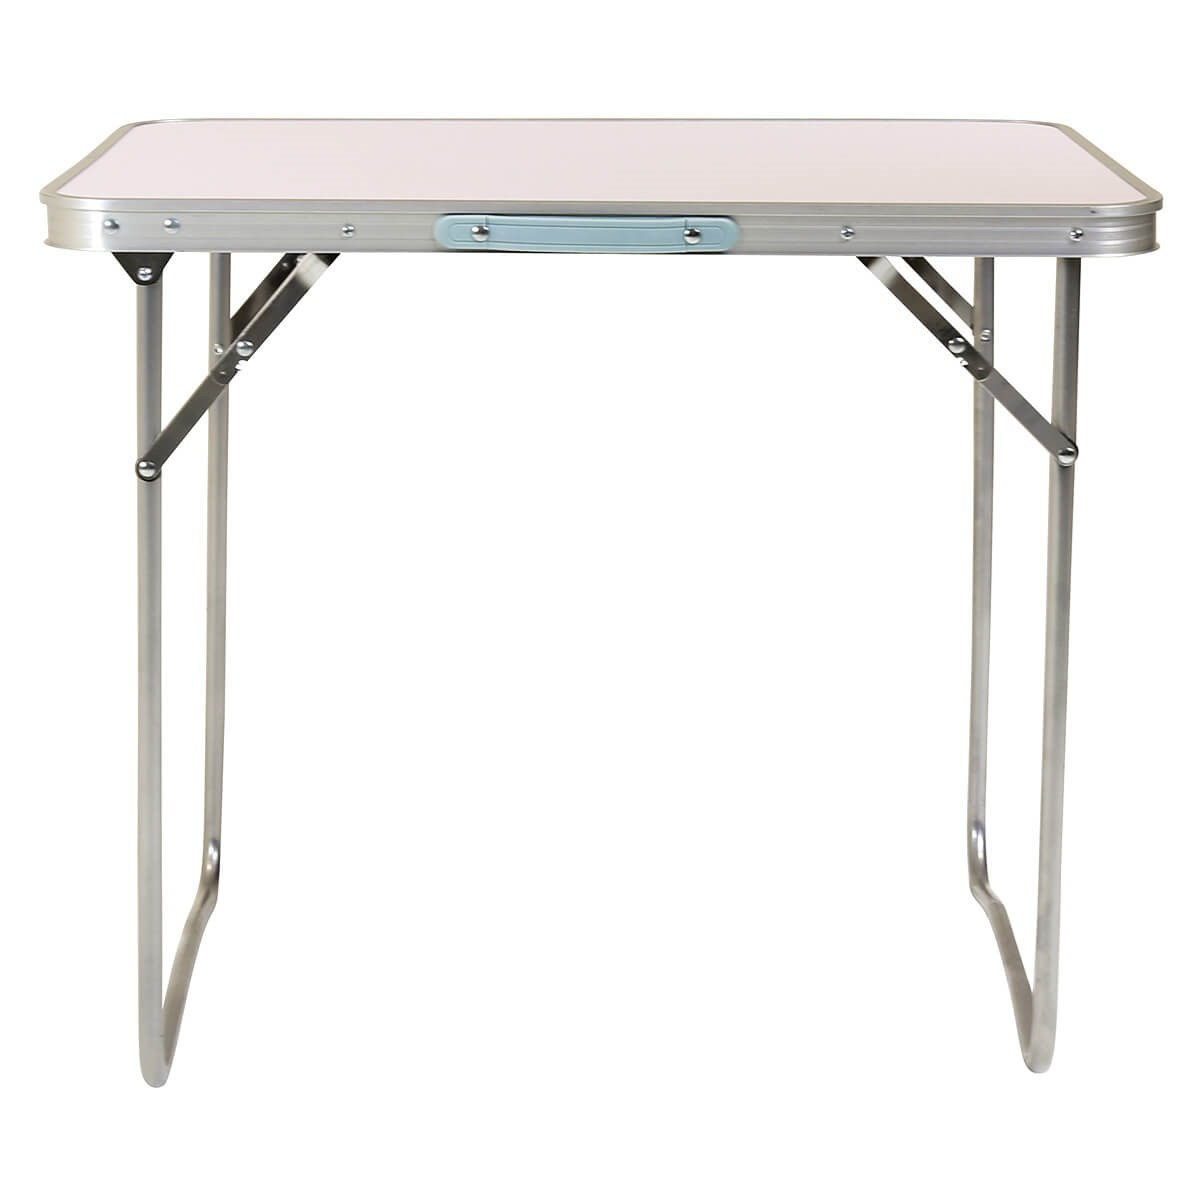 Small folding picnic table with handle savvysurf small folding picnic table with handle watchthetrailerfo